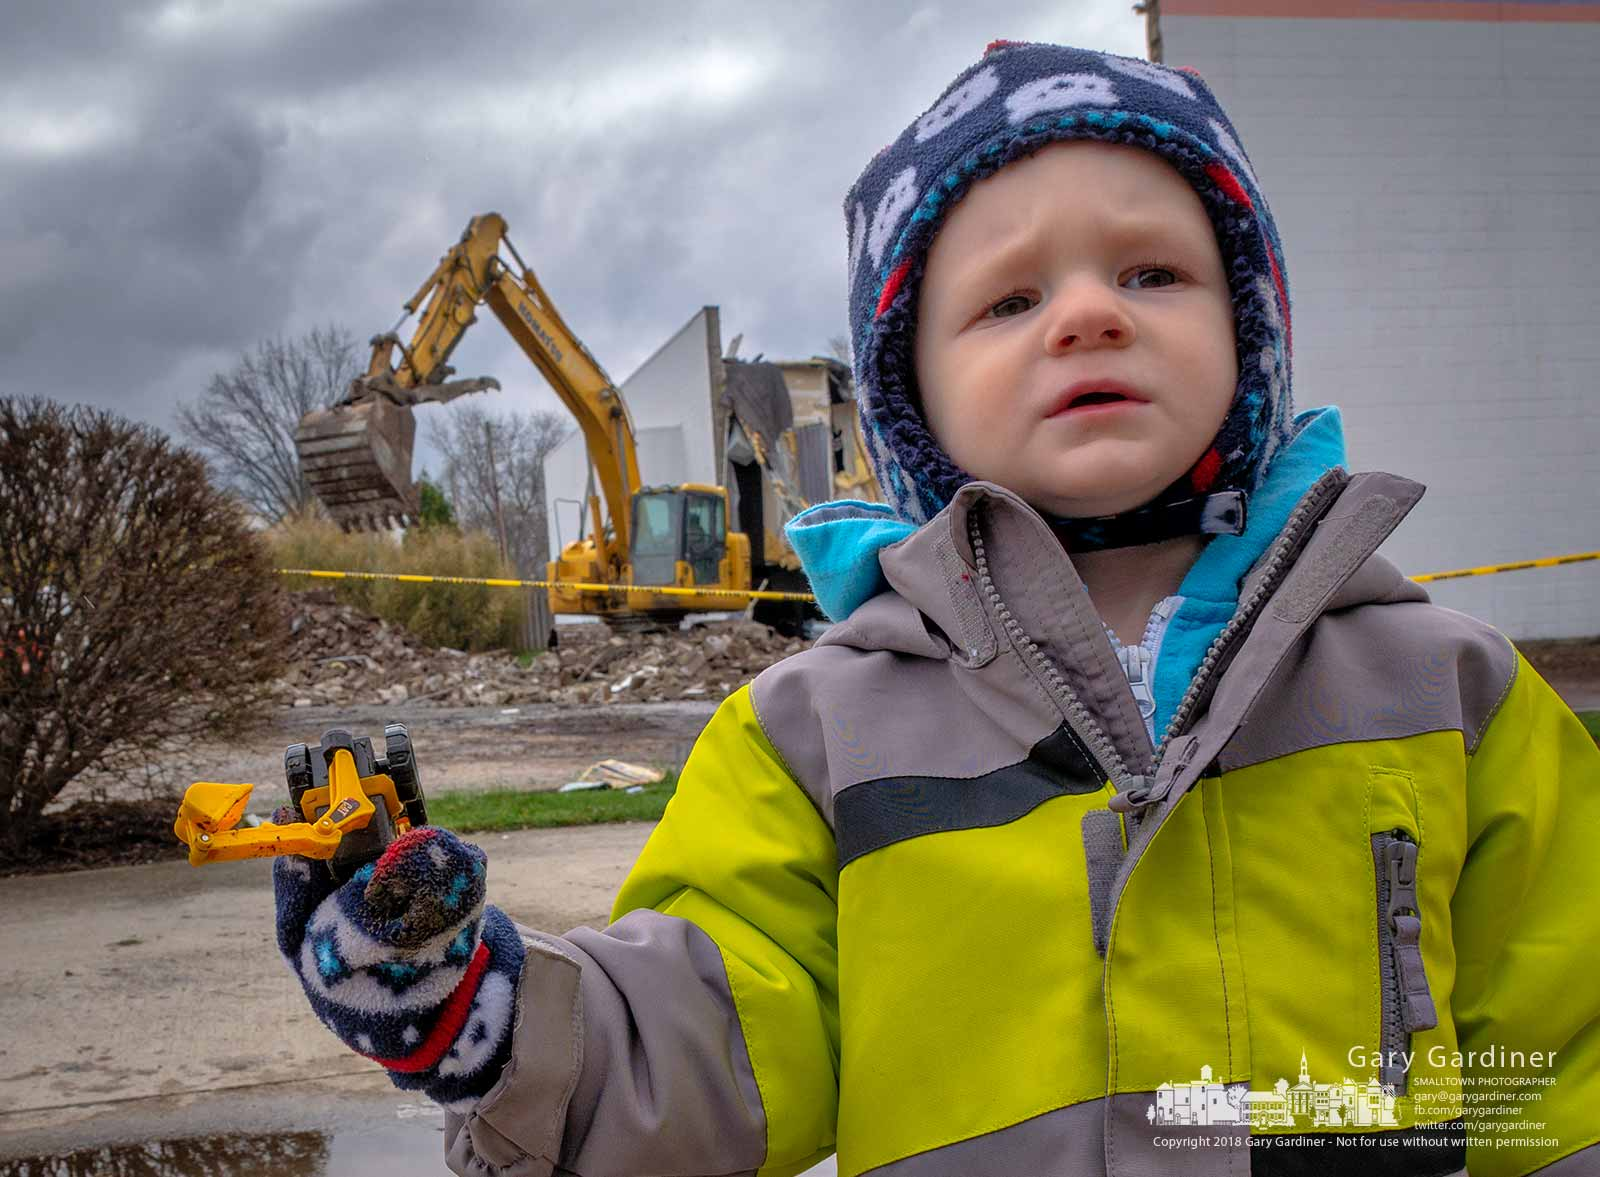 Three-year-old Drew shows off the plastic replica of the same equipment being used to demolish the Hollywood Cinema Theaters as workers began removing the building to make way for a new Aldi store. My Final Photo for April 19, 2018.